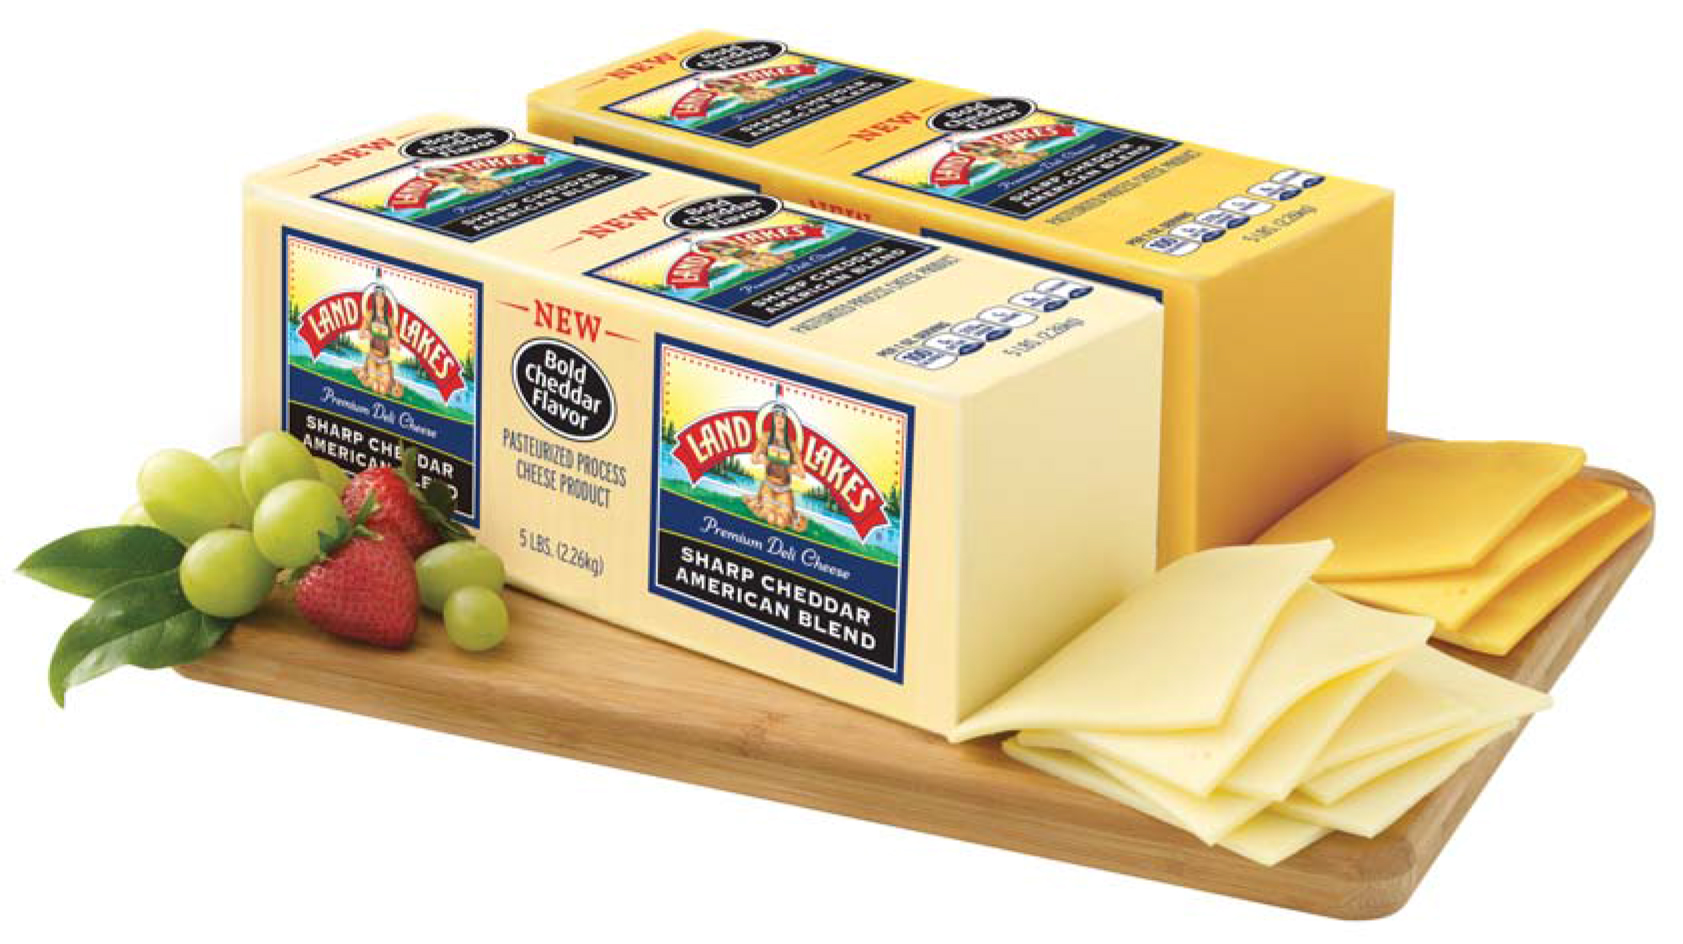 Land O'Lakes Sharp Cheddar American Blend - Food and Product Reviews